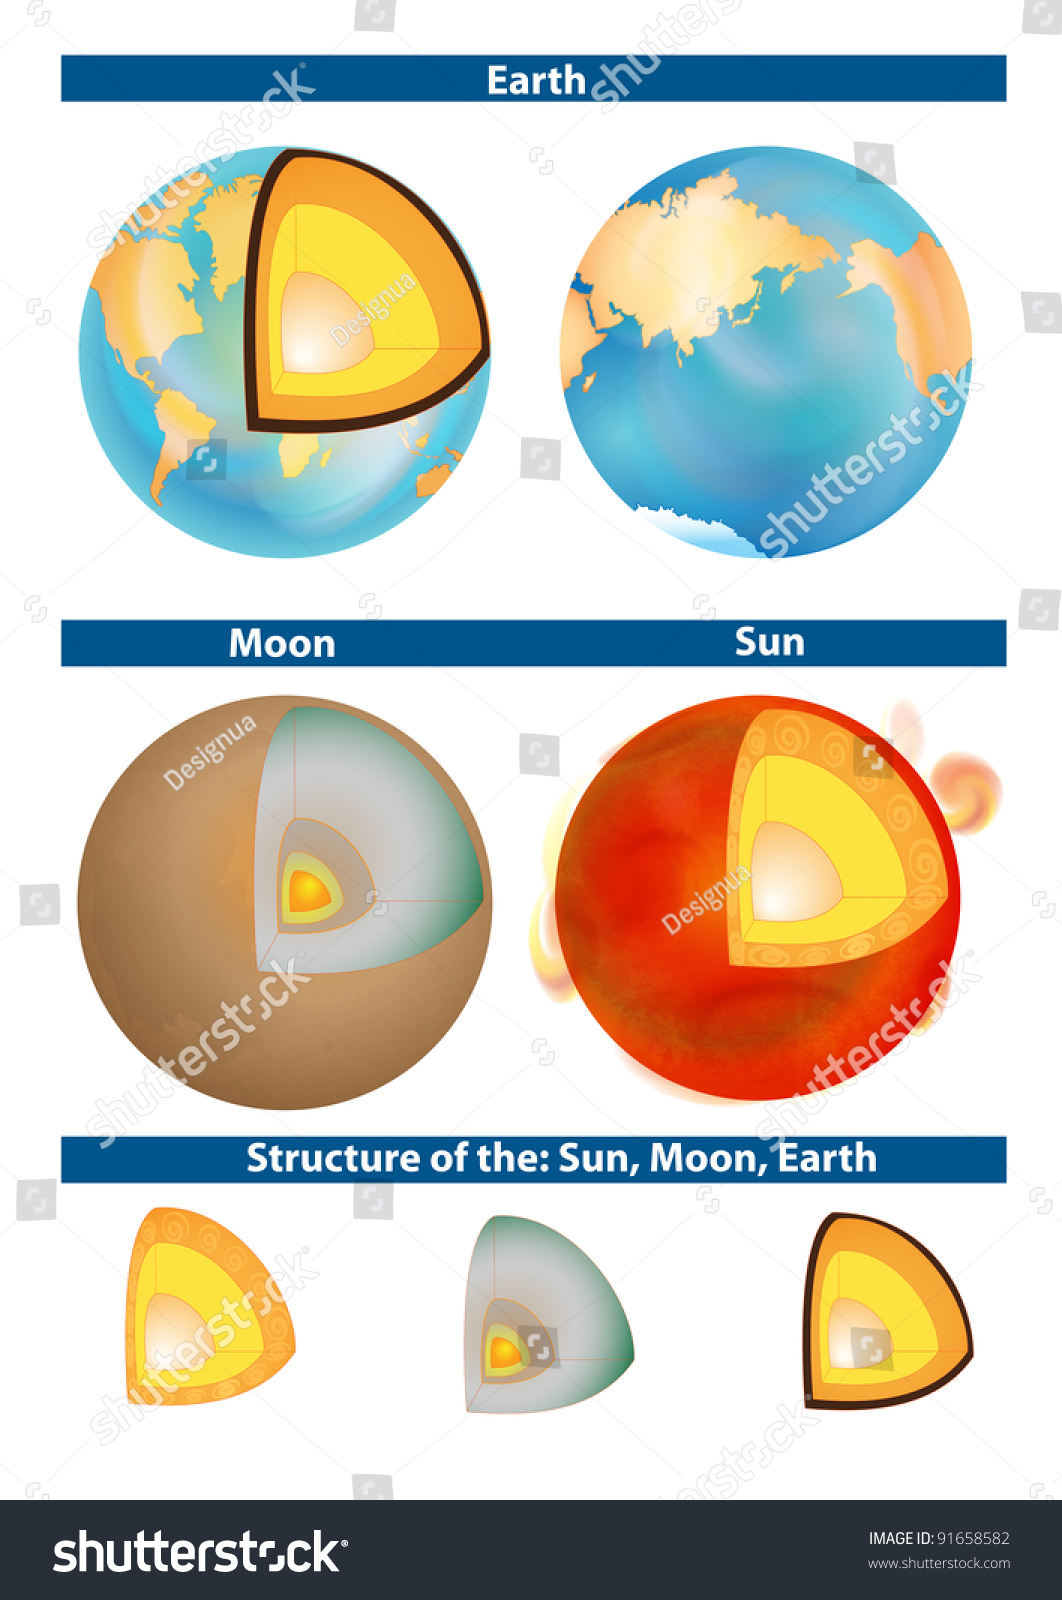 Earth Moon Sun Structure Planet Crosssection Stock